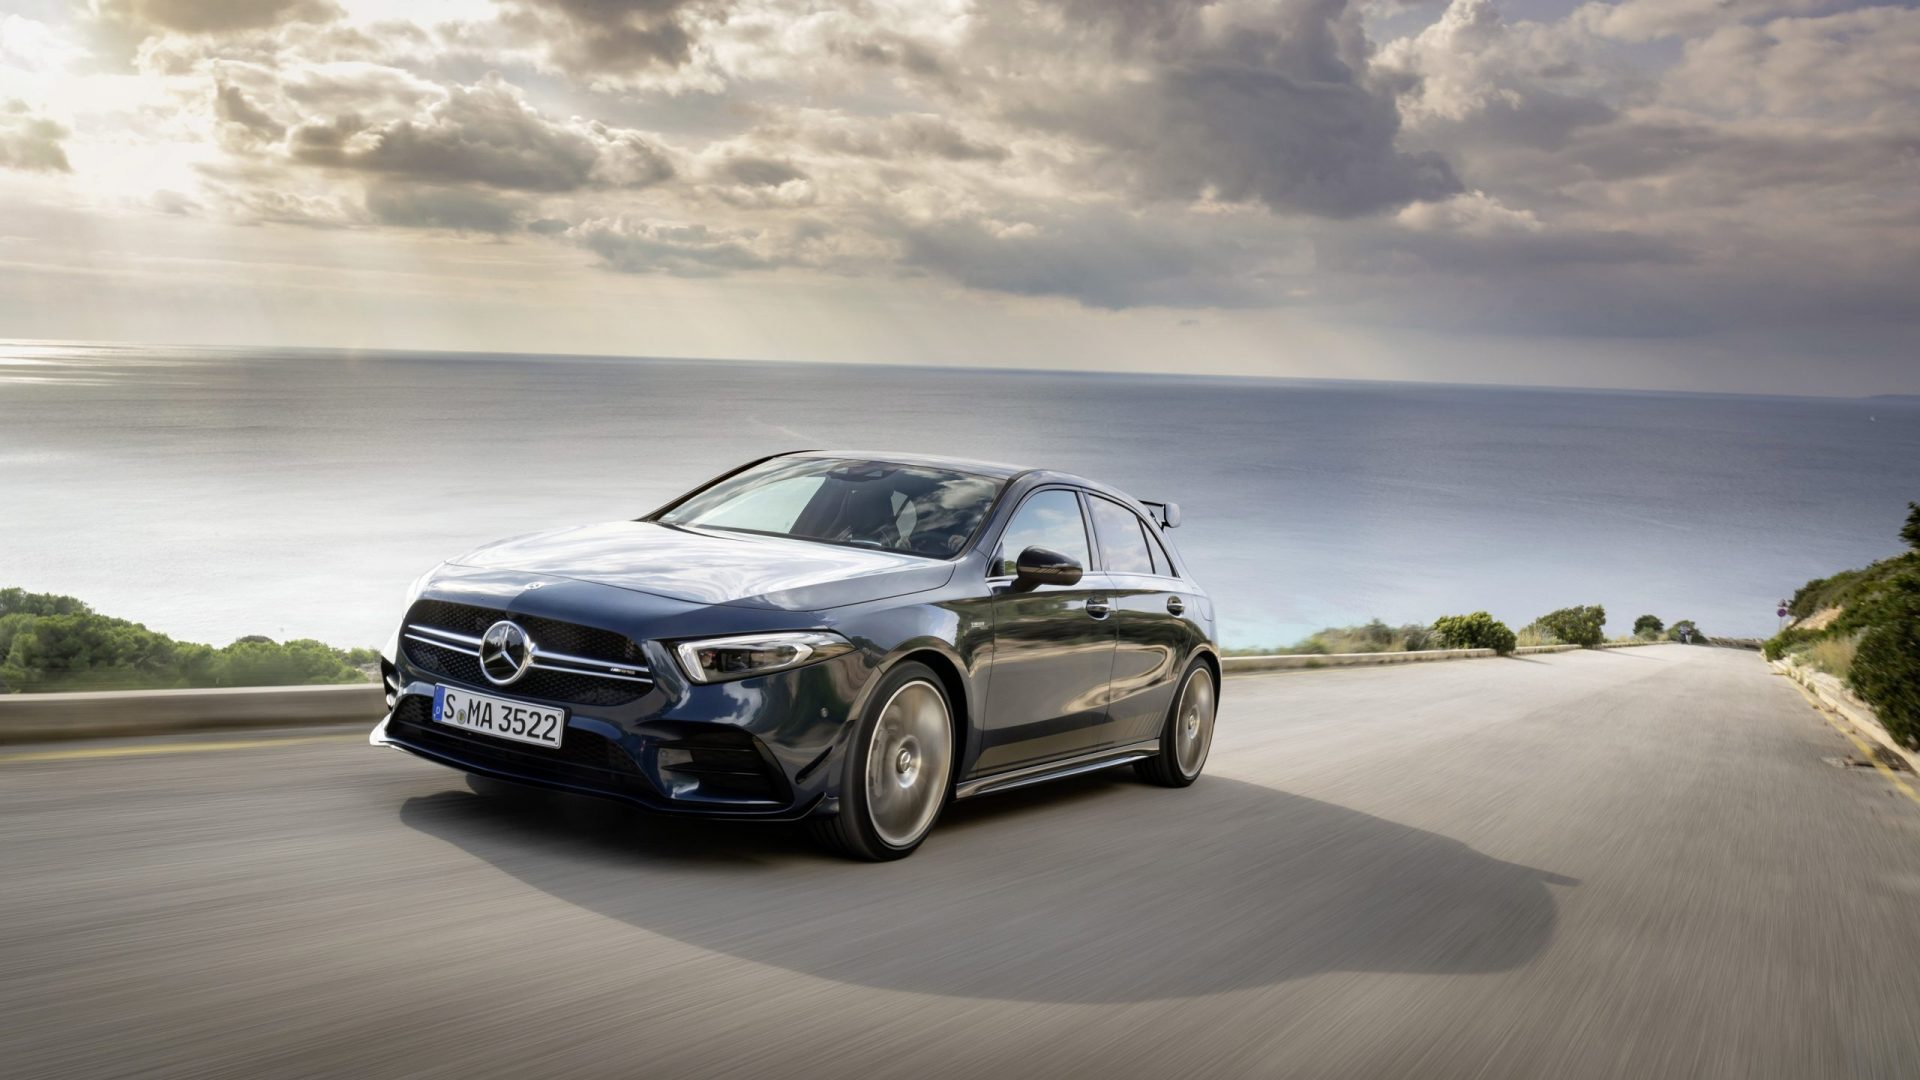 Mercedes Amg A 35 4matic: Neuer Einstieg In Die Welt Der Driving Performance Mercedes Amg A 35 4matic: New Entry Level Model Opens Up The World Of Driving Performance